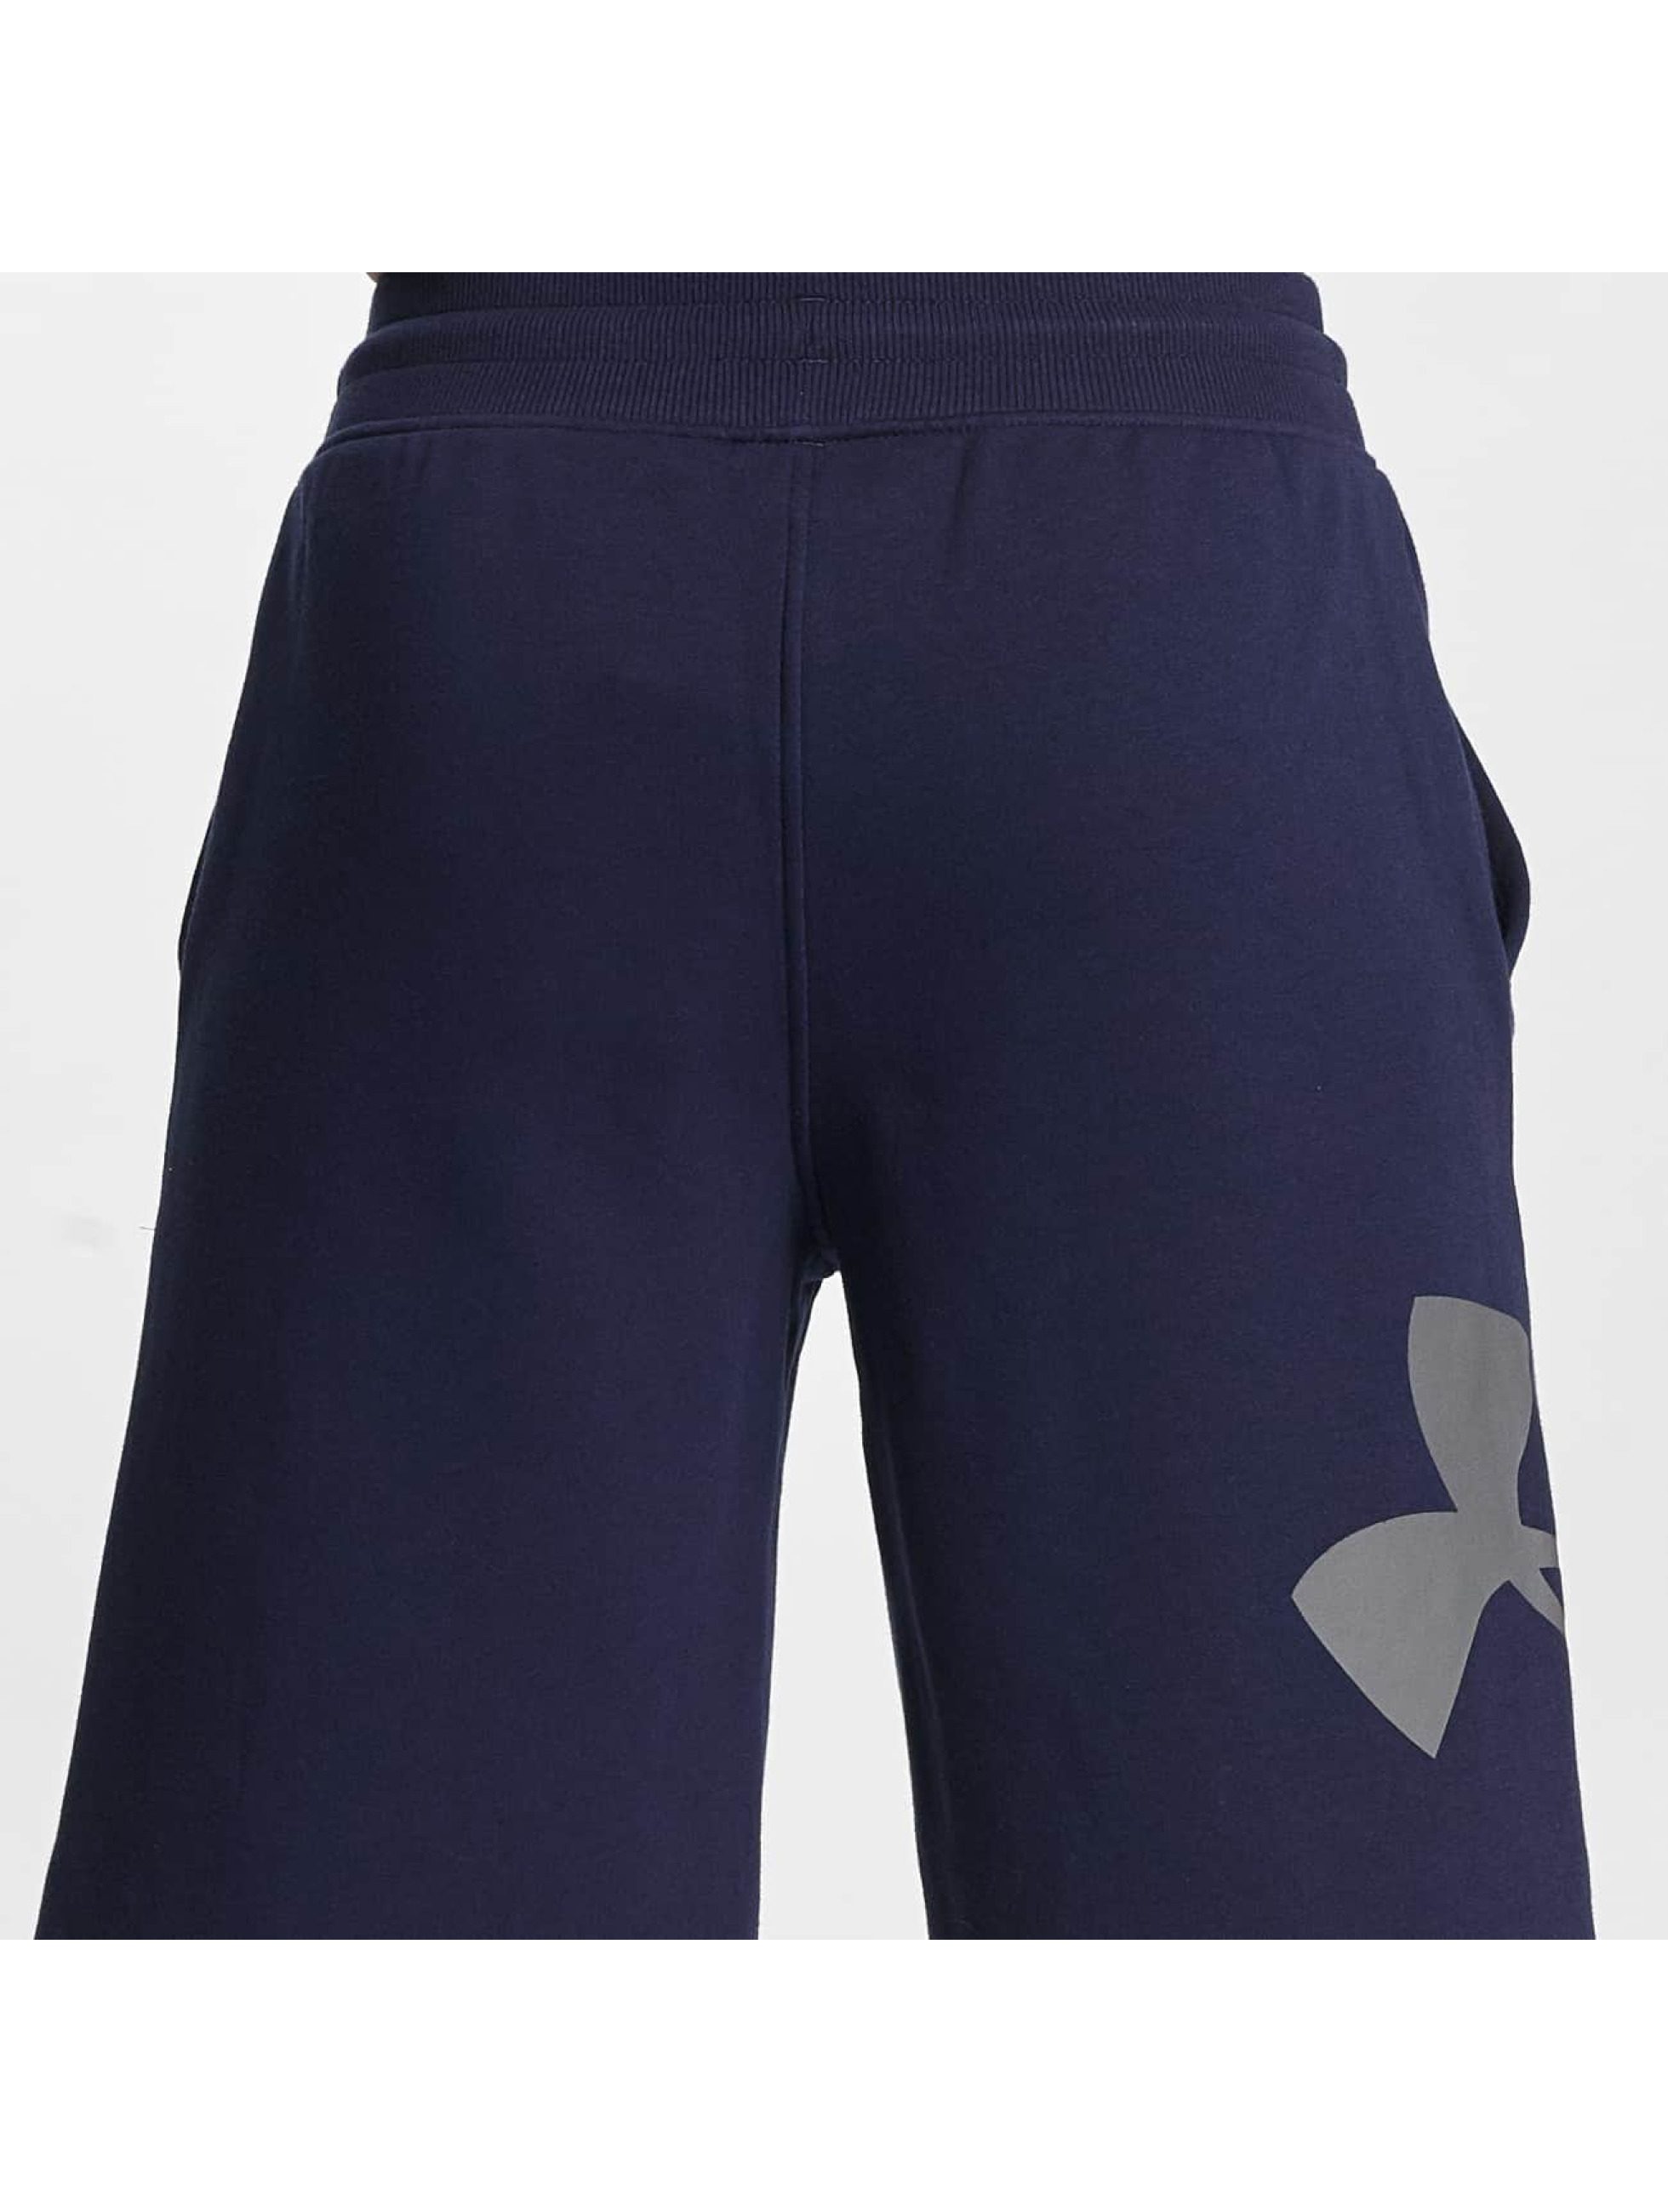 Under Armour Szorty Rival niebieski